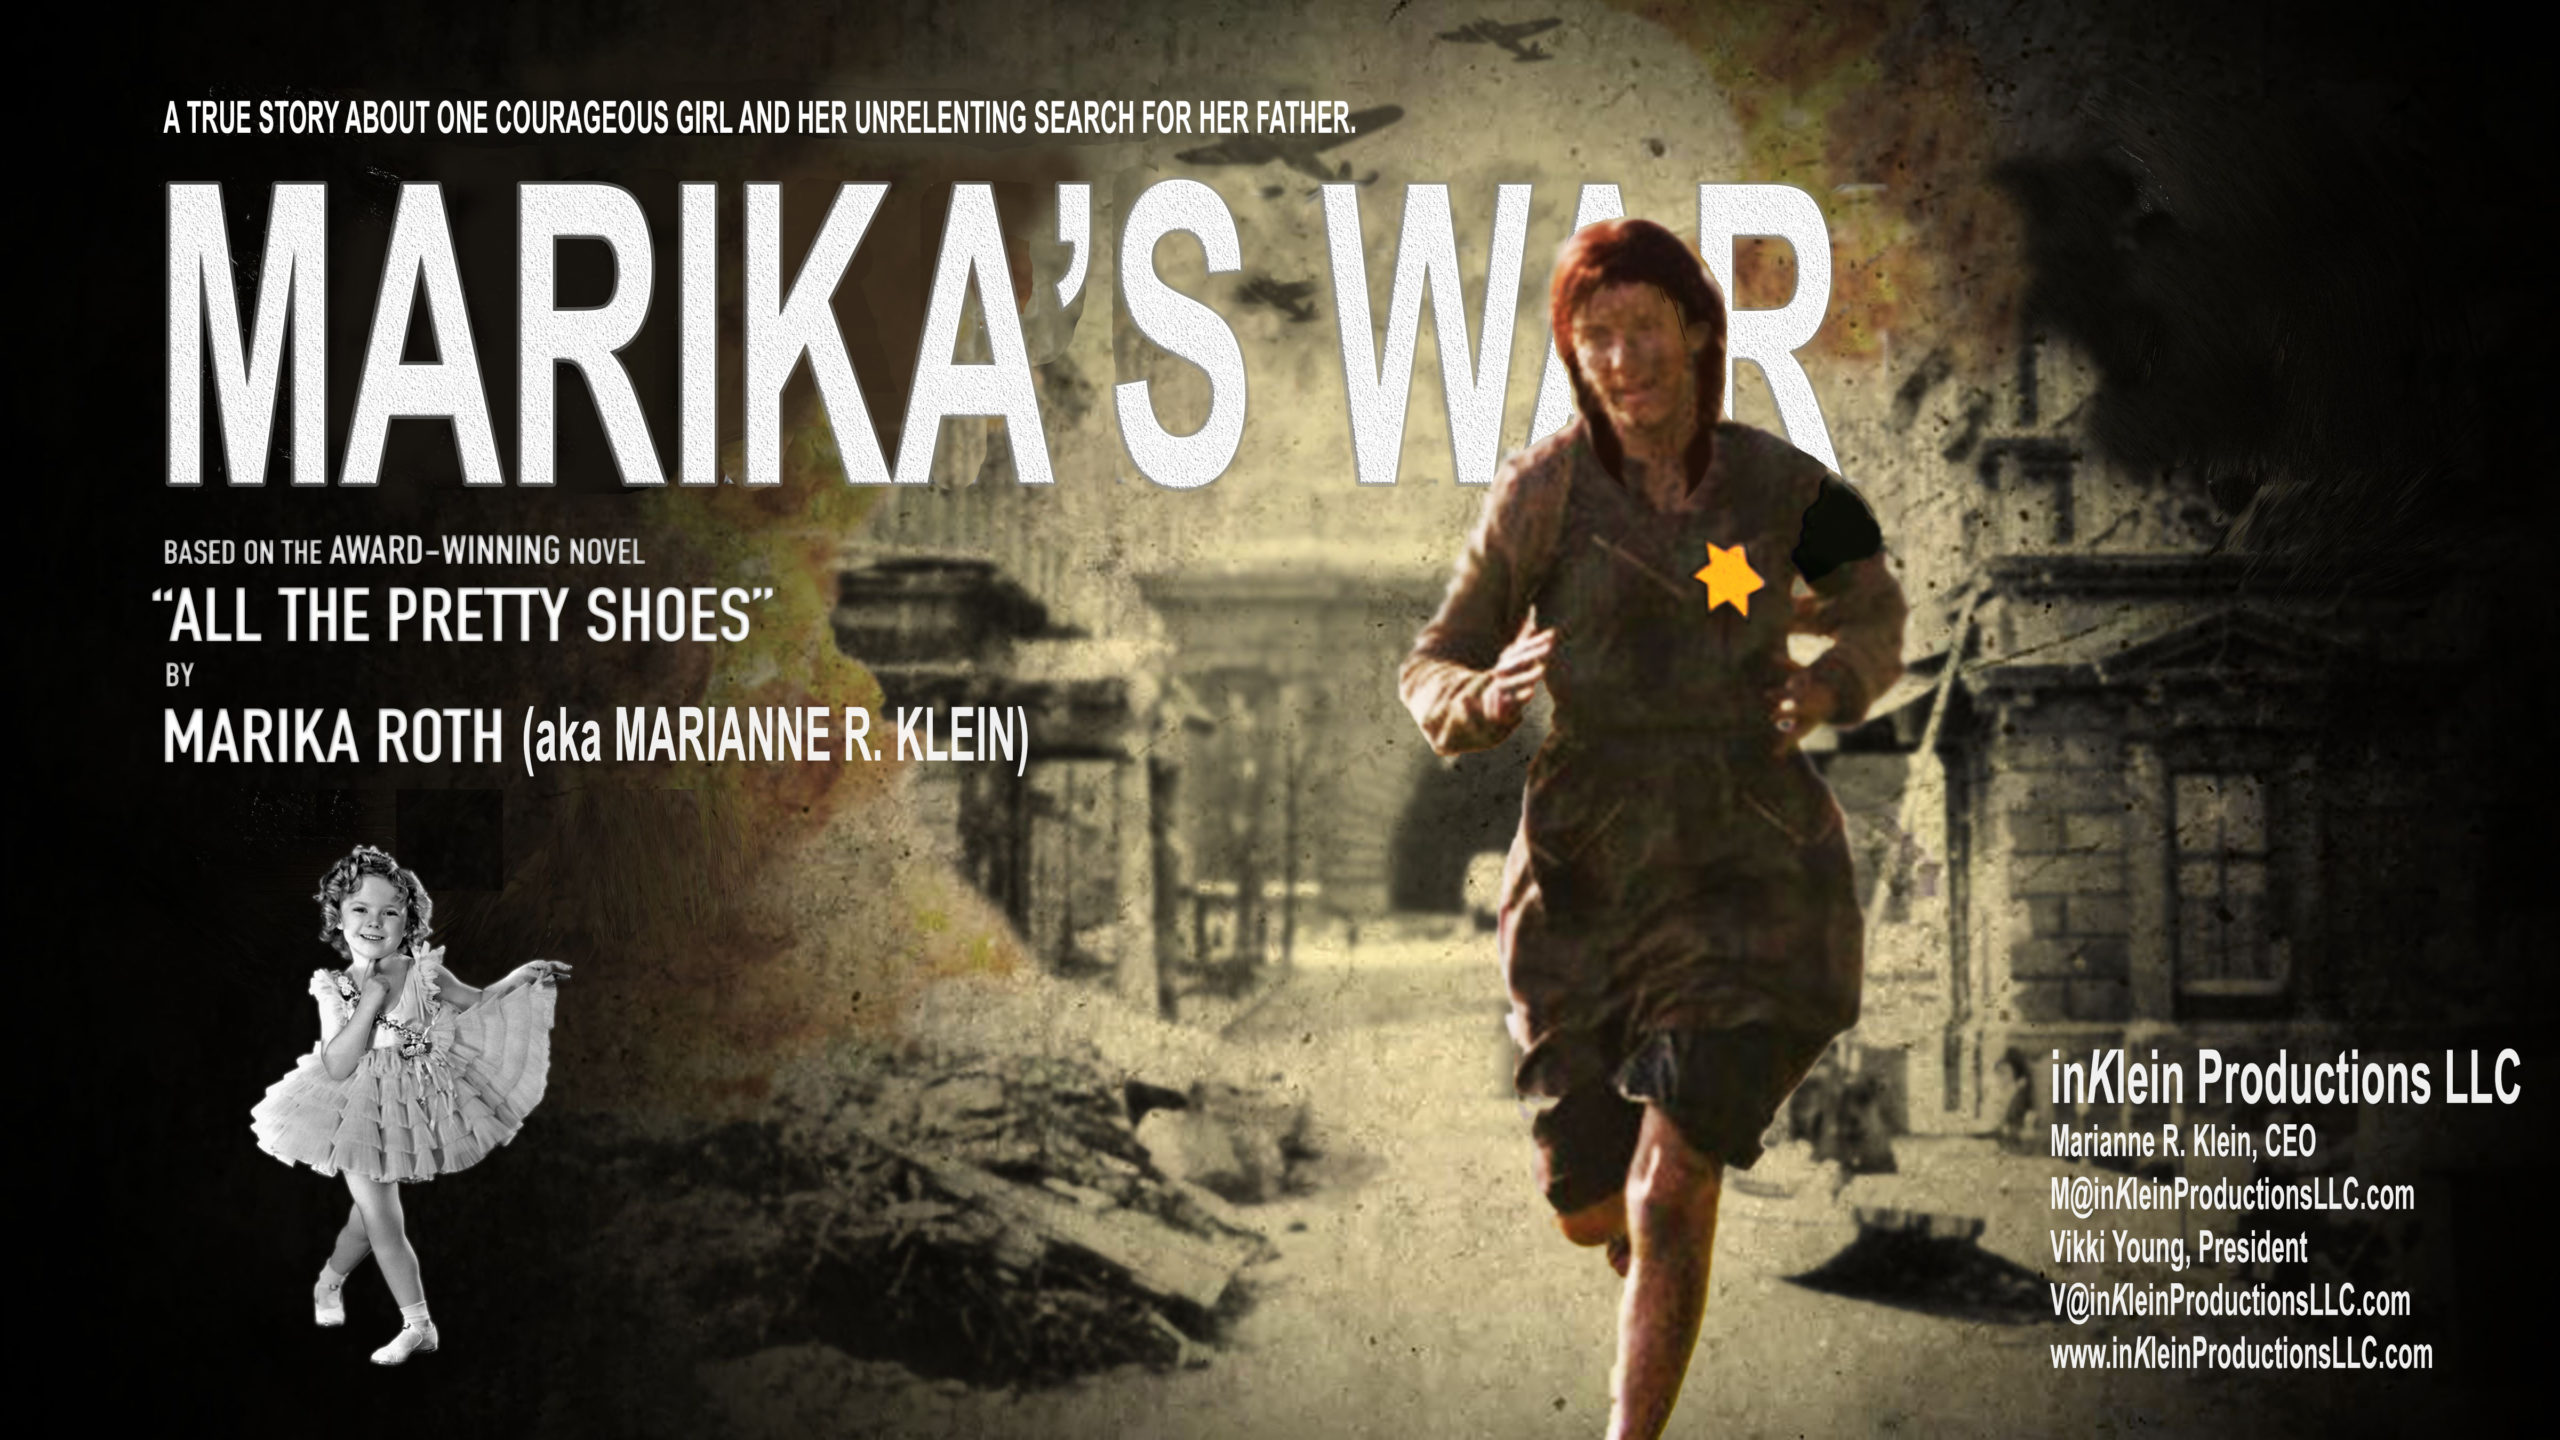 Poster image for screenplay, Marika's war, featuring woman running with bright yellow star of David, contrasted by Shirley Temple in left background.